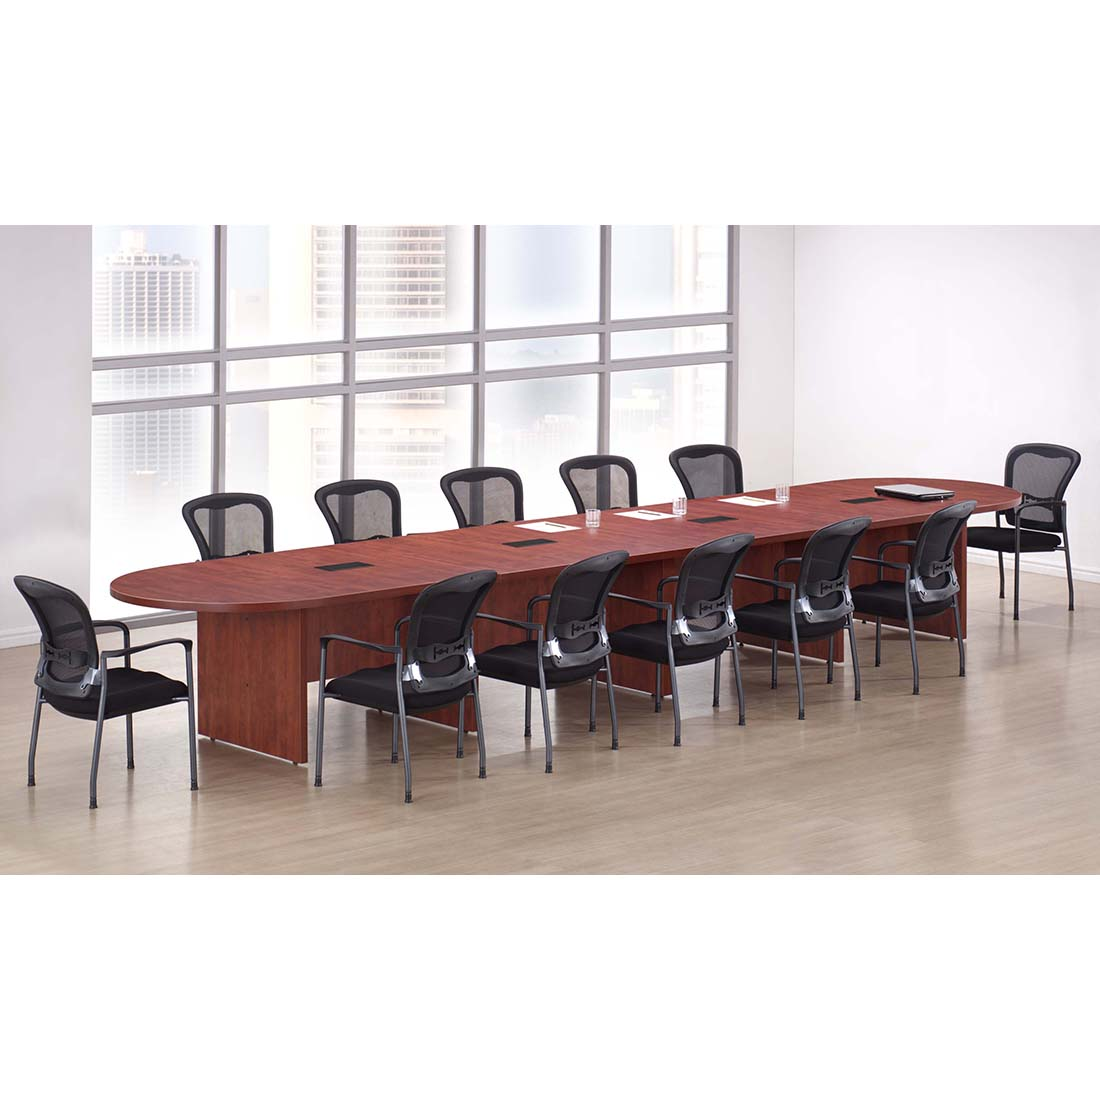 PLBoardtableExtlongRmSceneGrommet Bnn Office Furniture - Conference room table grommets